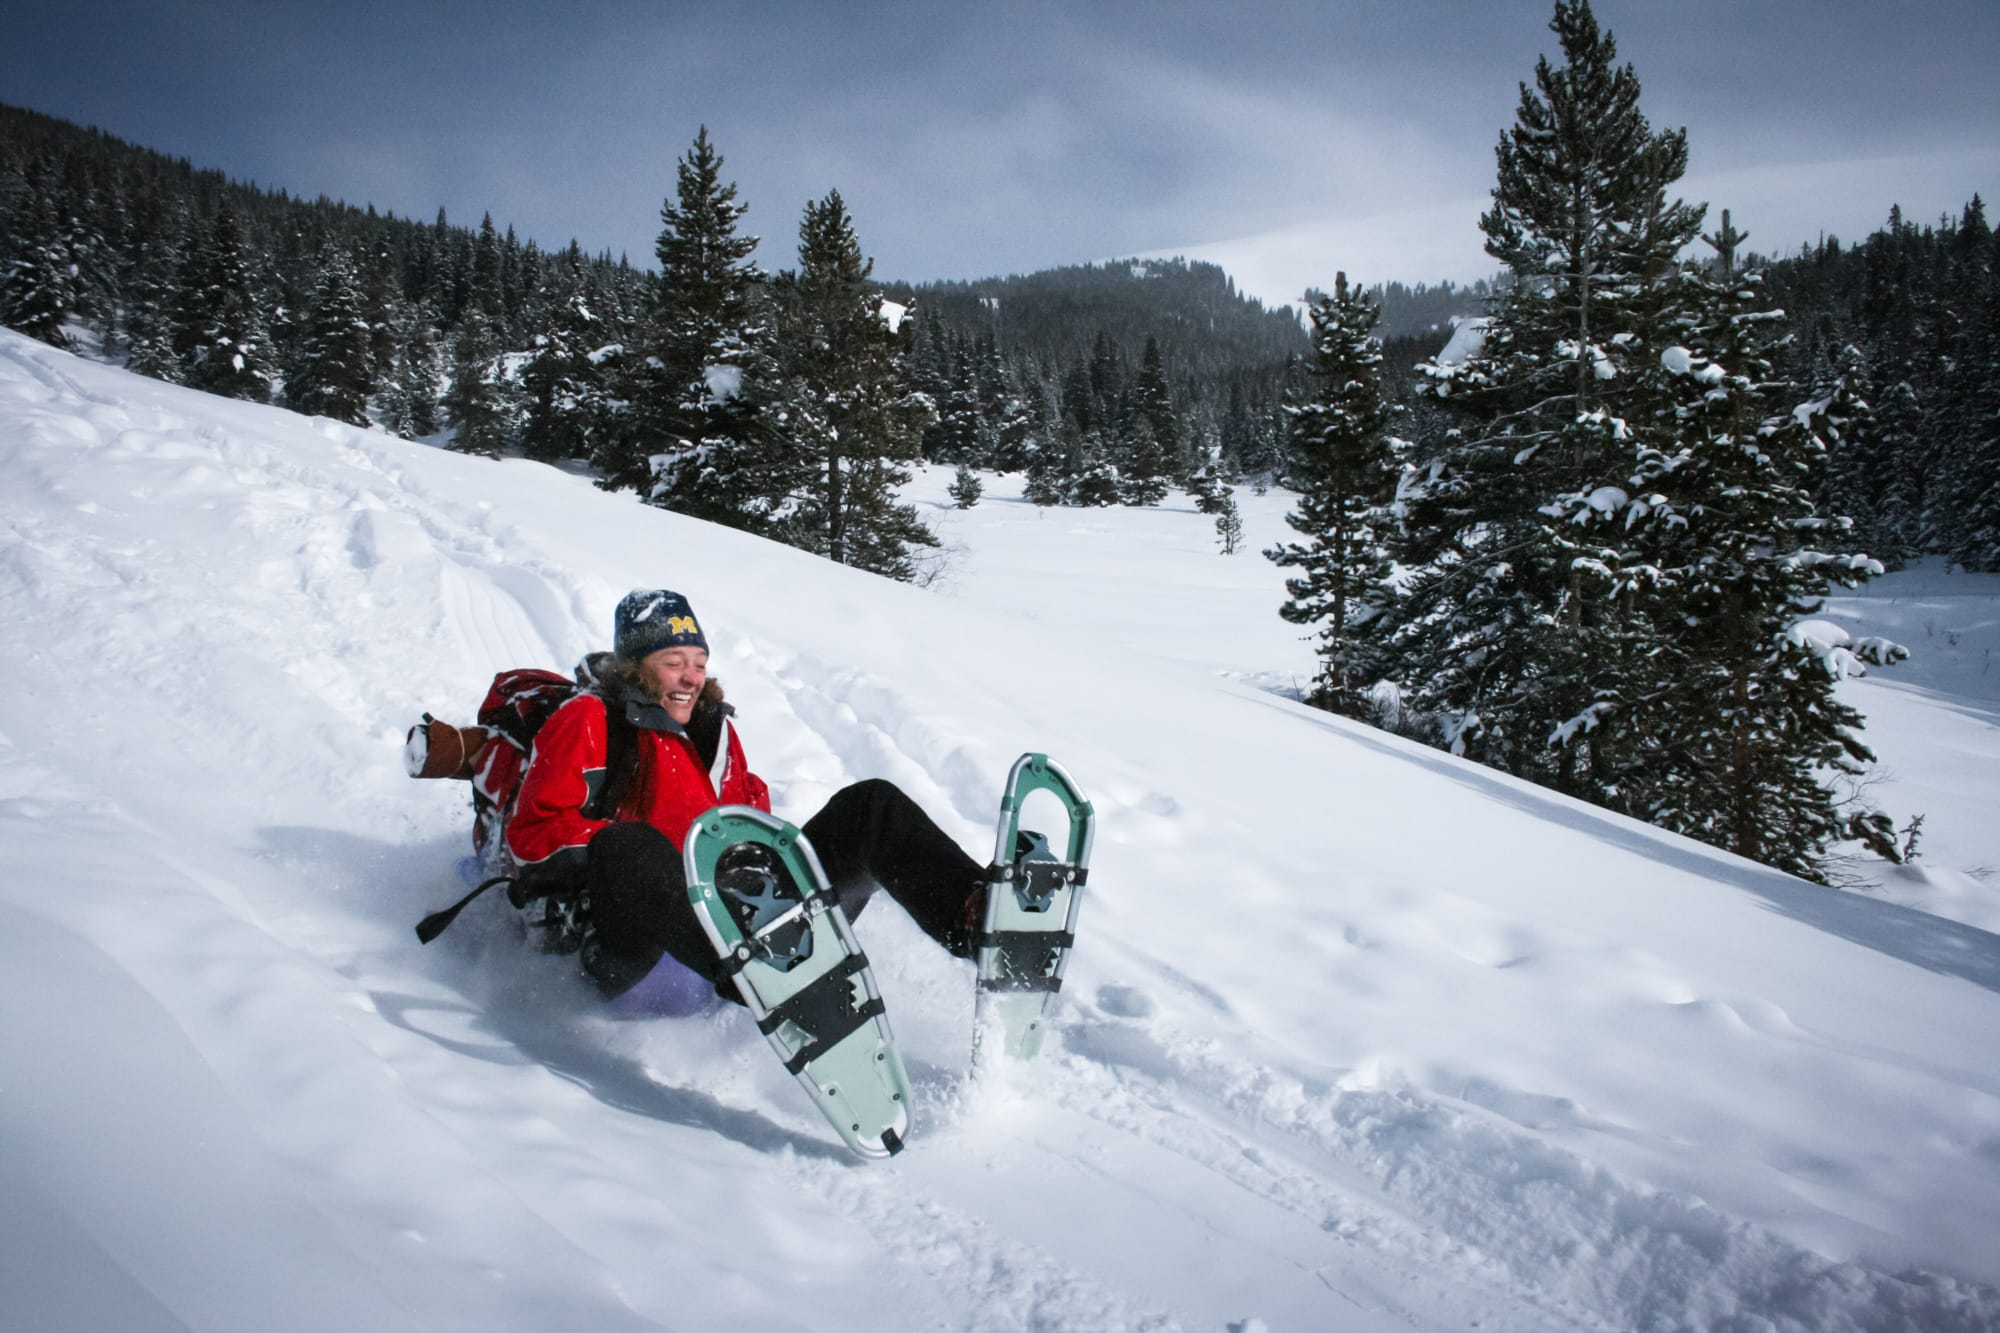 Reasons to take a backcountry hut trip - #11: Backcountry sledding